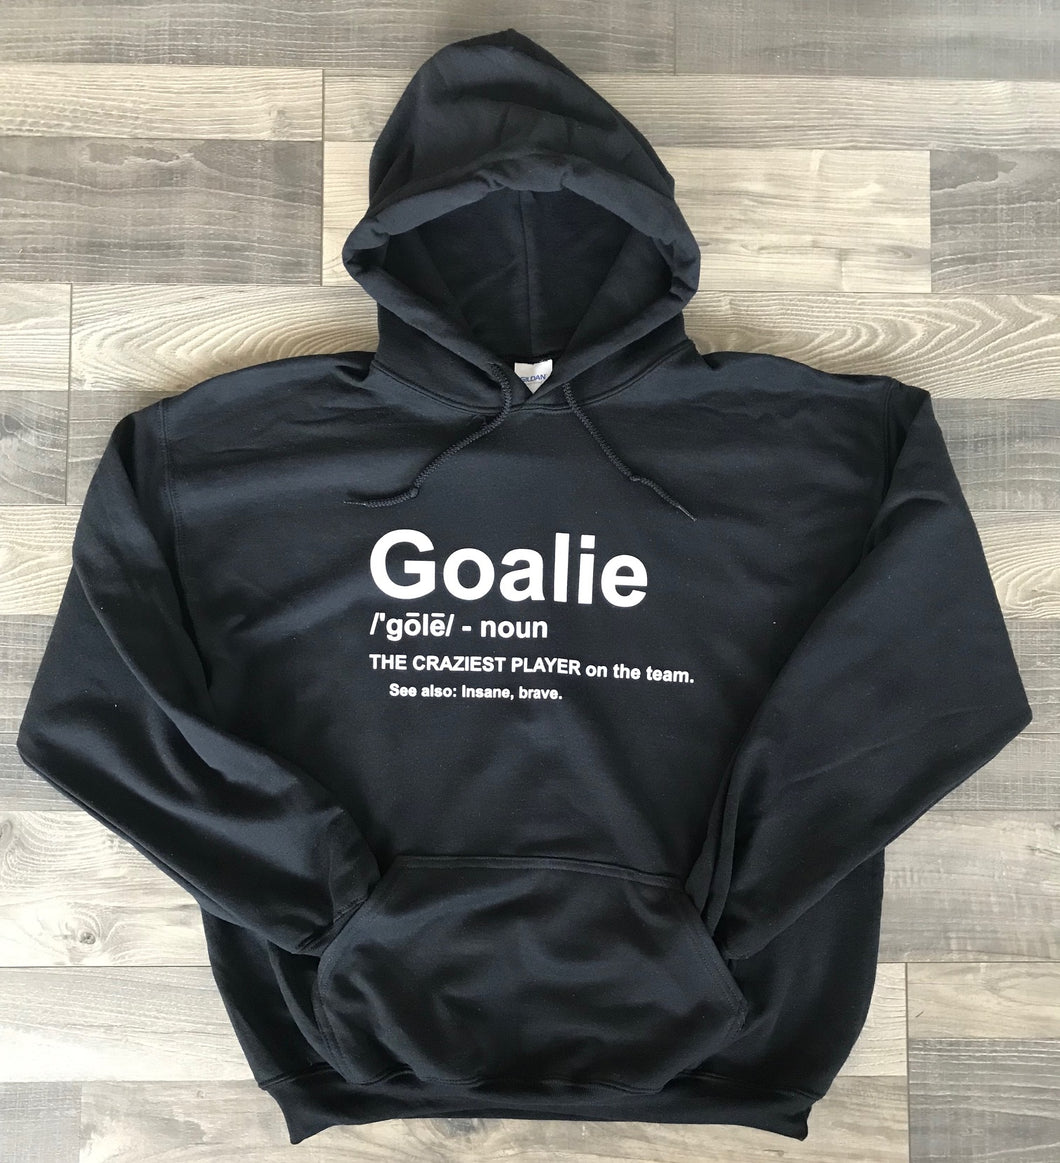 Goalie Definition Hooded Sweatshirt